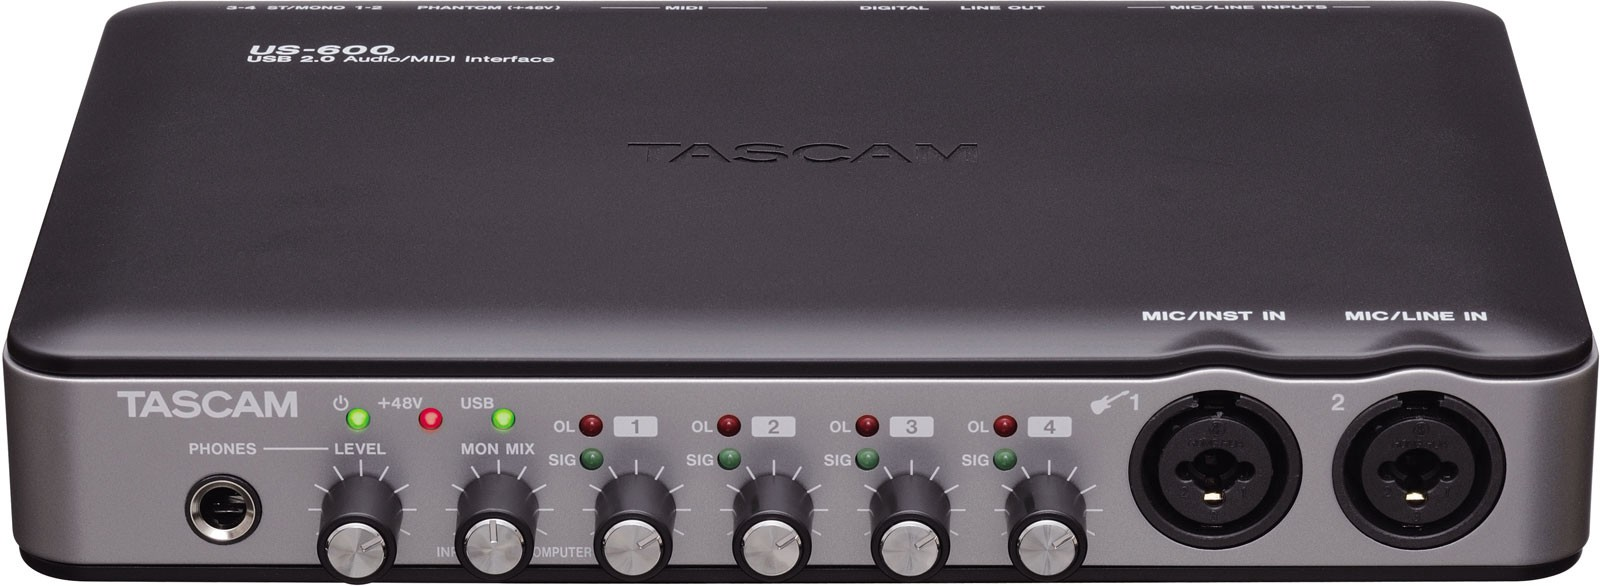 How to connect your TASCAM US-600 with MacOS Mojave